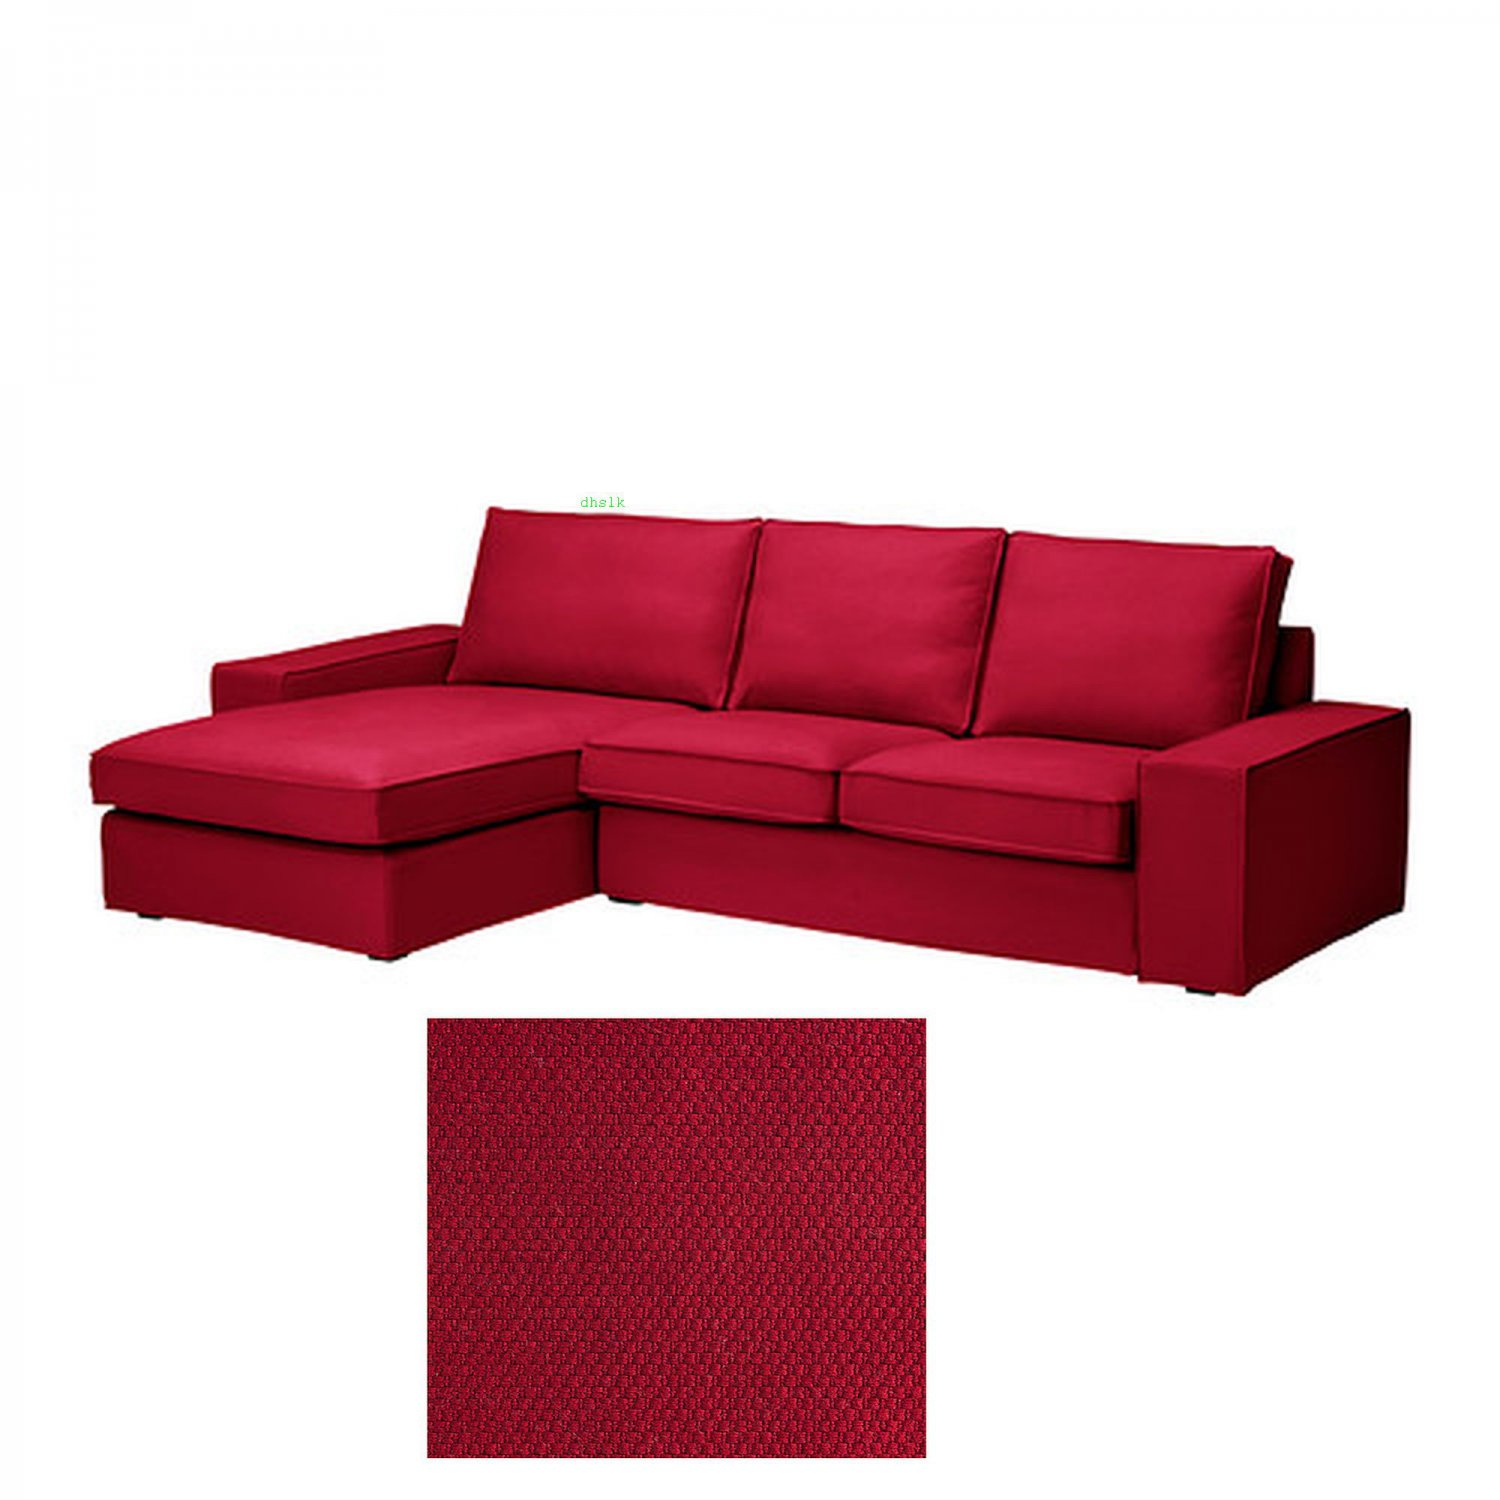 Ikea kivik 2 seat loveseat sofa w chaise lounge slipcover for Chaise couch slipcover